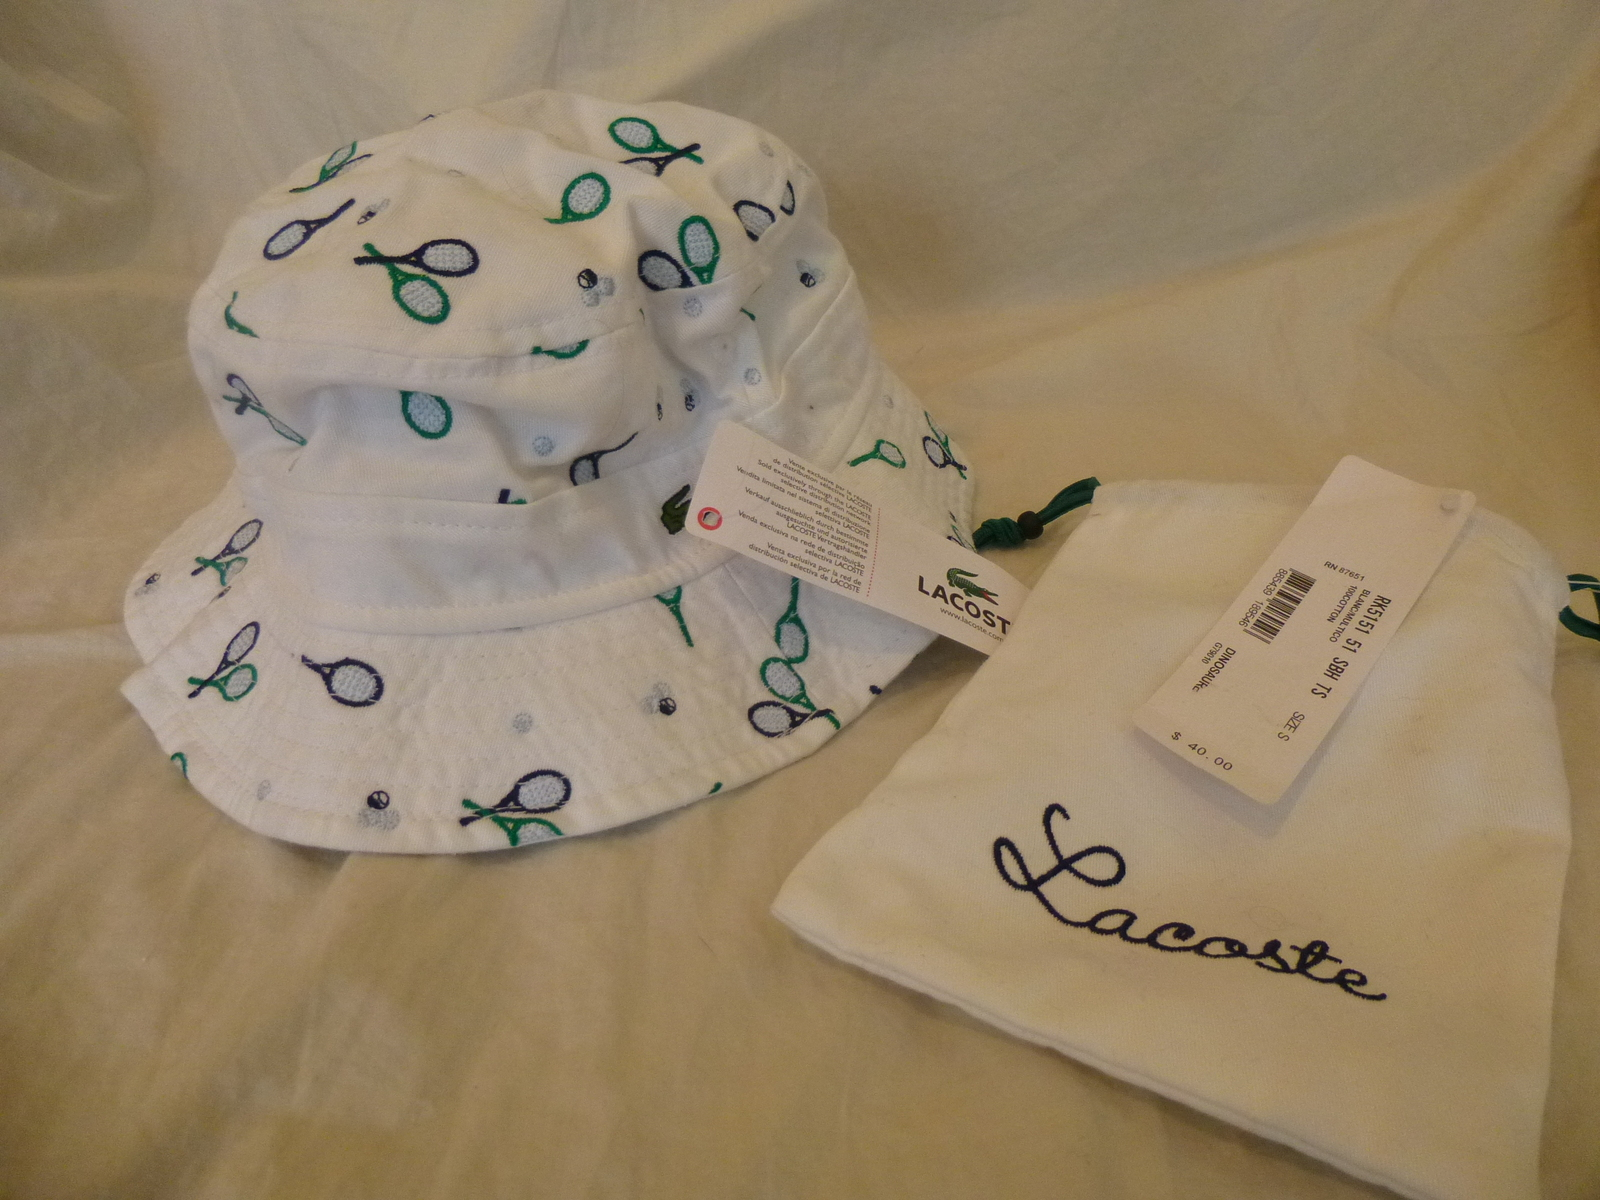 d02c083cd66 Kids Lacoste Bucket Hat~White~Tennis and 20 similar items. P1090891